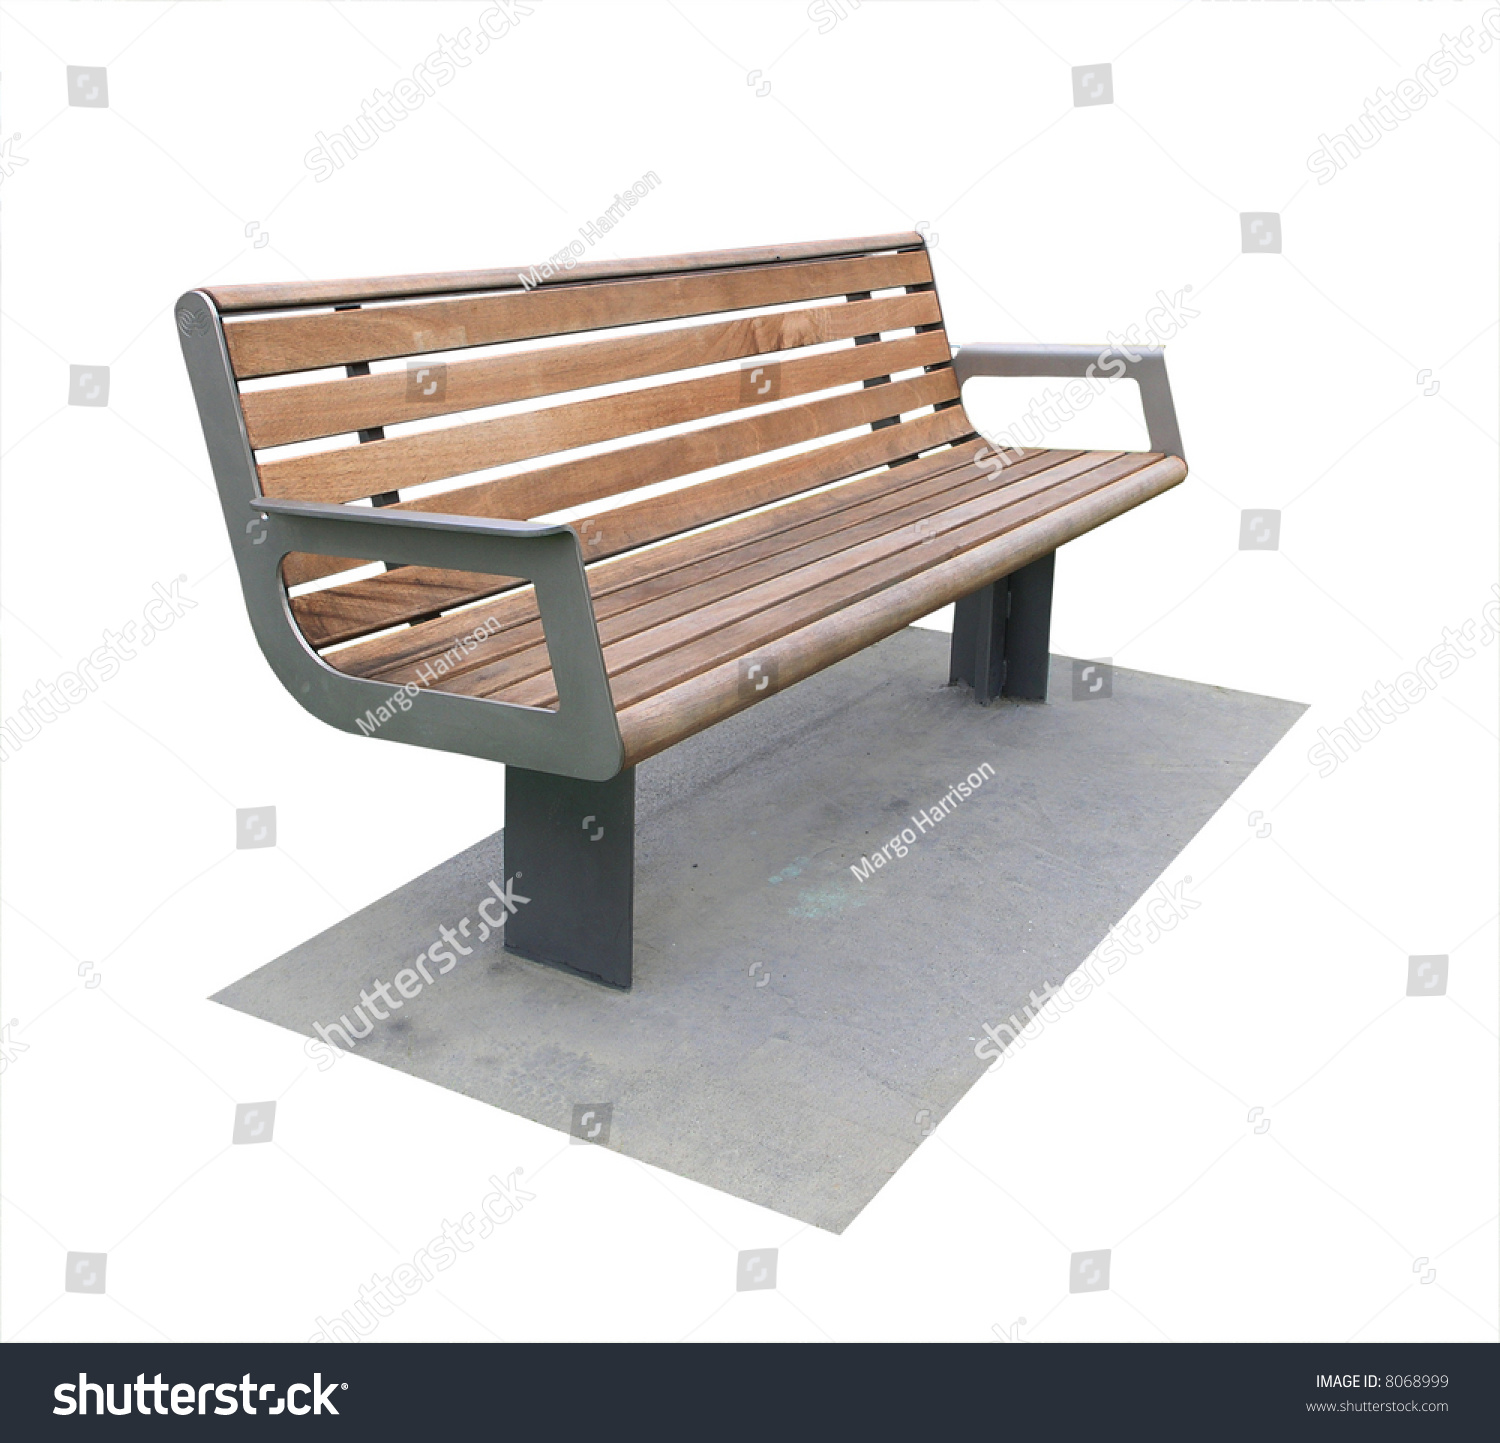 Modern Concrete Benches: Modern Park Bench On Concrete Pad Stock Photo 8068999